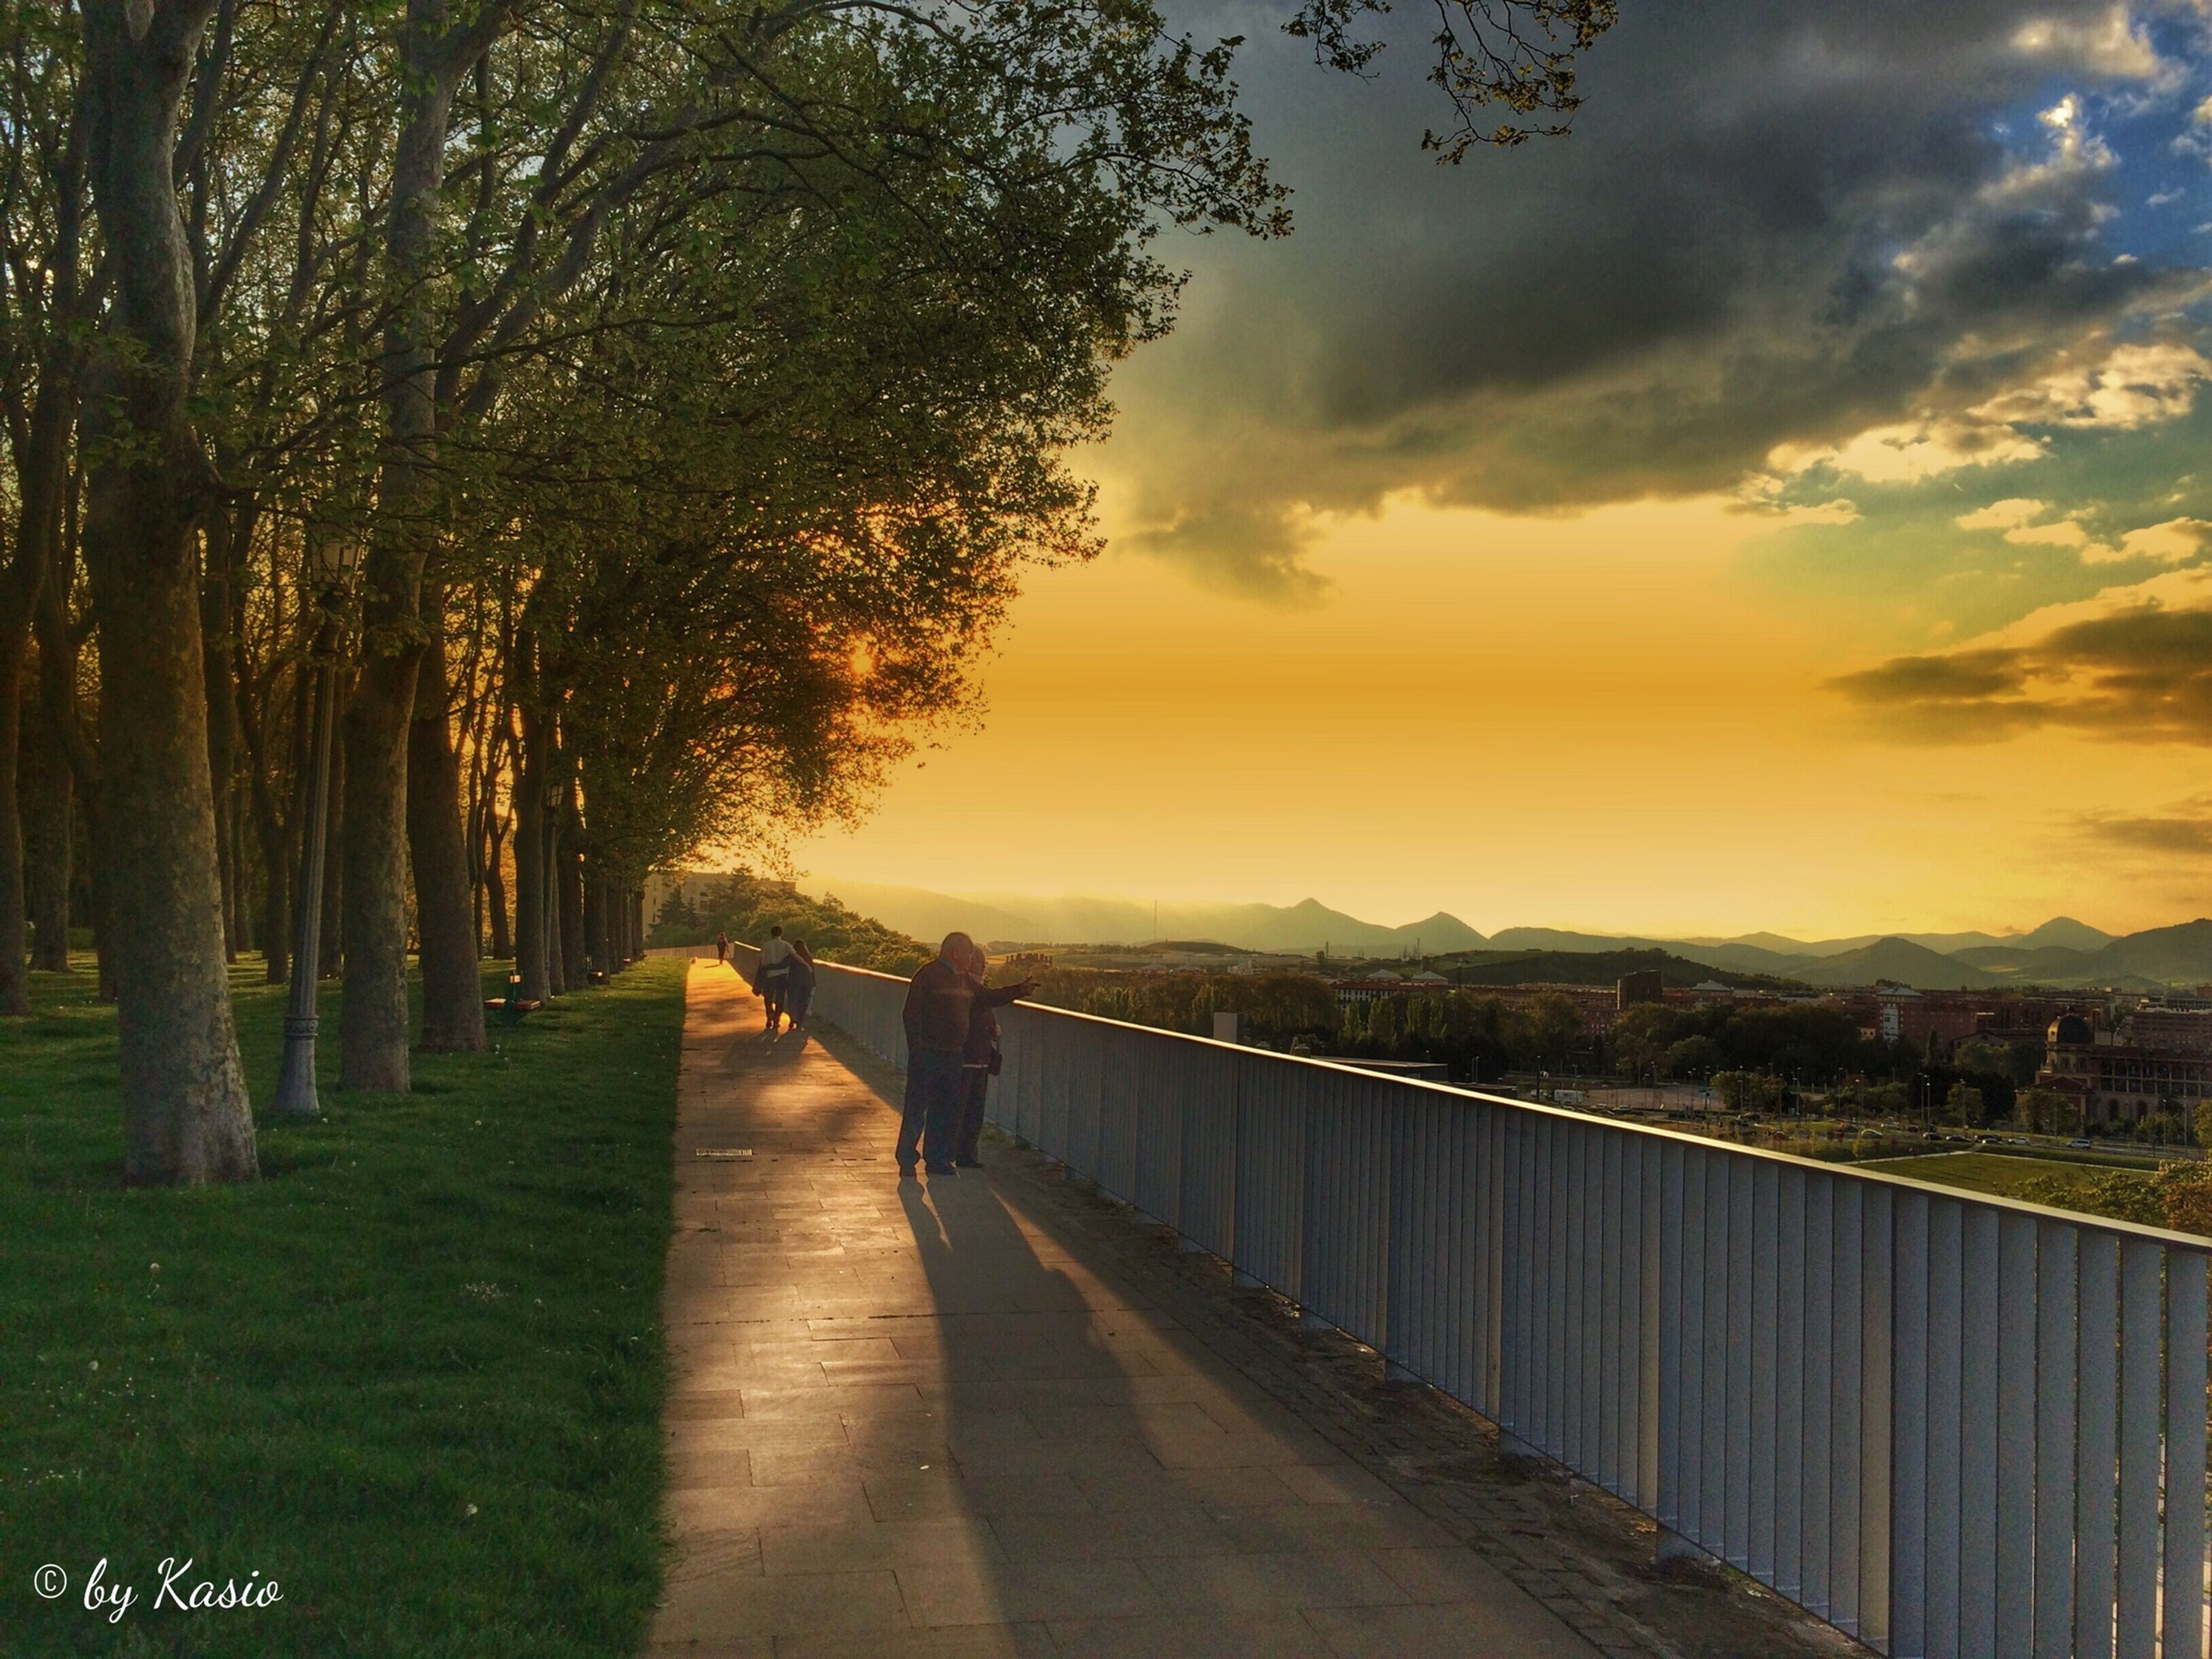 the way forward, sunset, sky, tranquility, tree, tranquil scene, diminishing perspective, water, railing, cloud - sky, scenics, beauty in nature, vanishing point, nature, footpath, walkway, road, cloud, idyllic, narrow